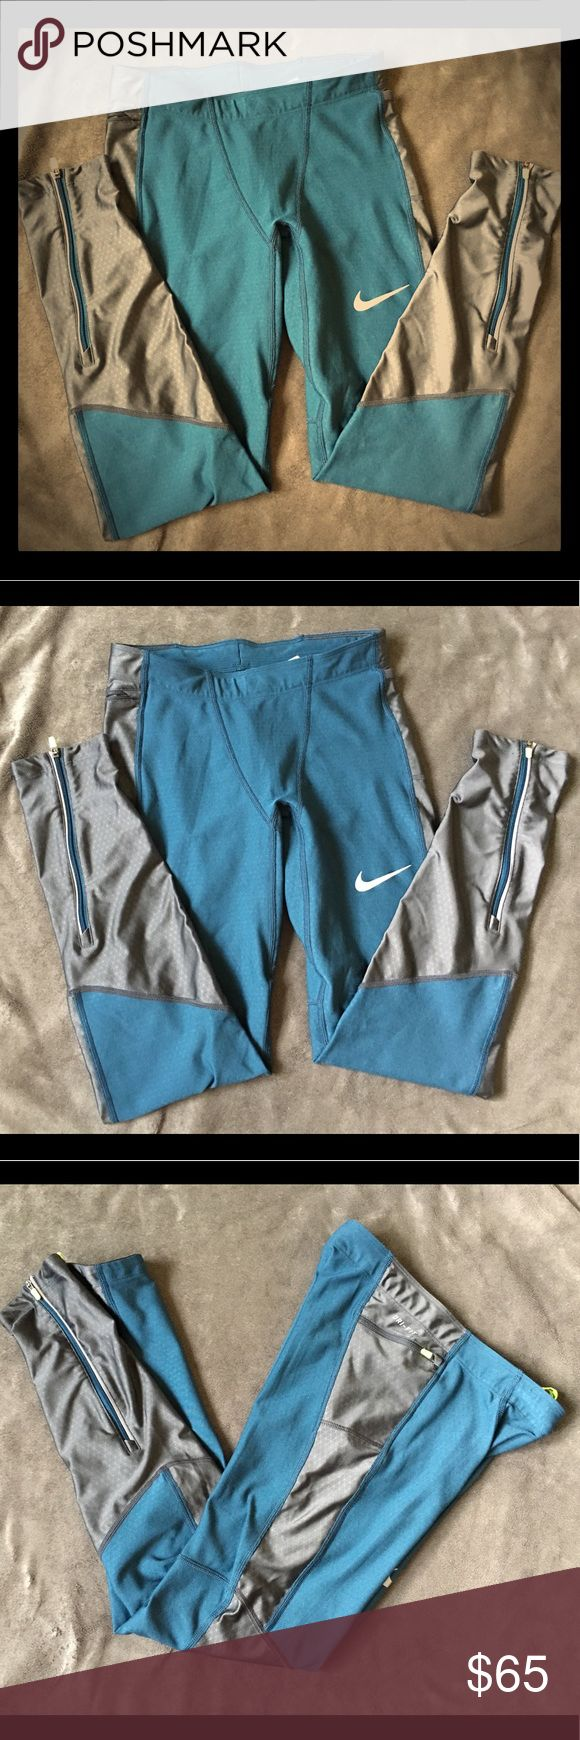 Nike Men's running tights Like-new running tights. Teal mesh and grey tights, zipper on the back ankles and grip on the hem to help keep them from bunching. Interior drawstring. Beautiful condition. Nike Pants